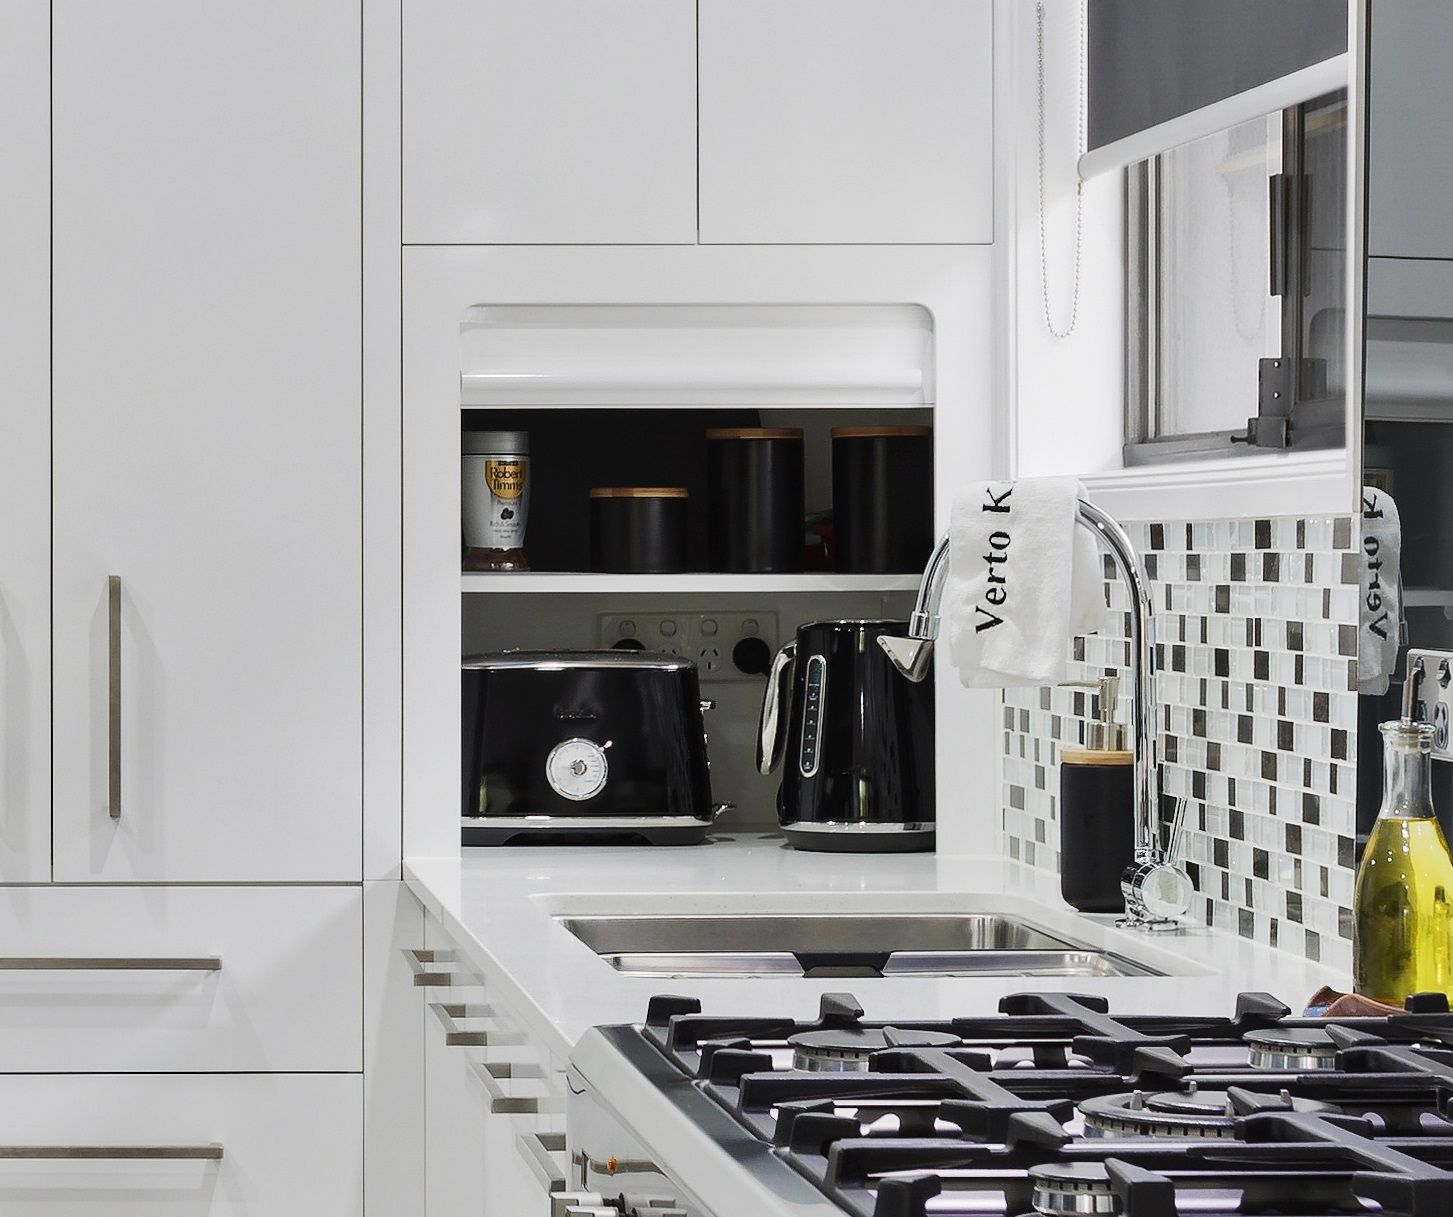 Great Appliance Cupboard With Roller Door To Hide All Those Appliances And Keep Your Benchtop Clear Hide Appliances Roller Doors Kitchen Renovation